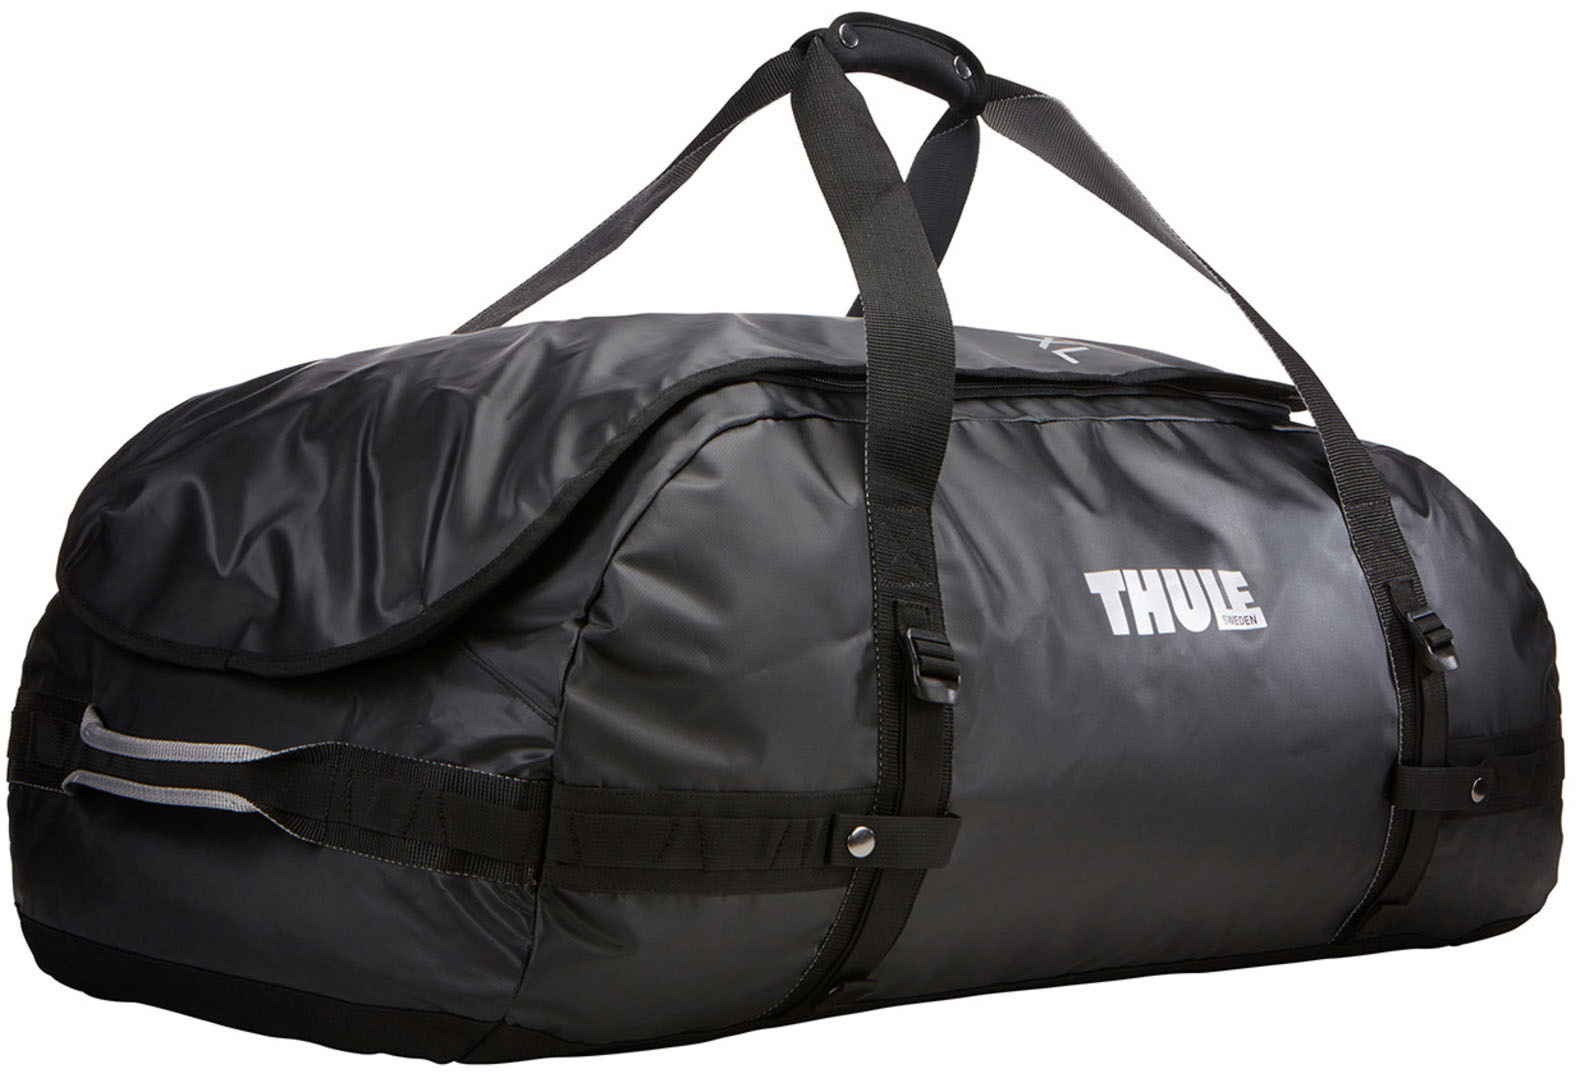 Thule Chasm Сумка спортивная Thule Chasm XL-130L 538210_sized_1800x1200_rev_1.jpg